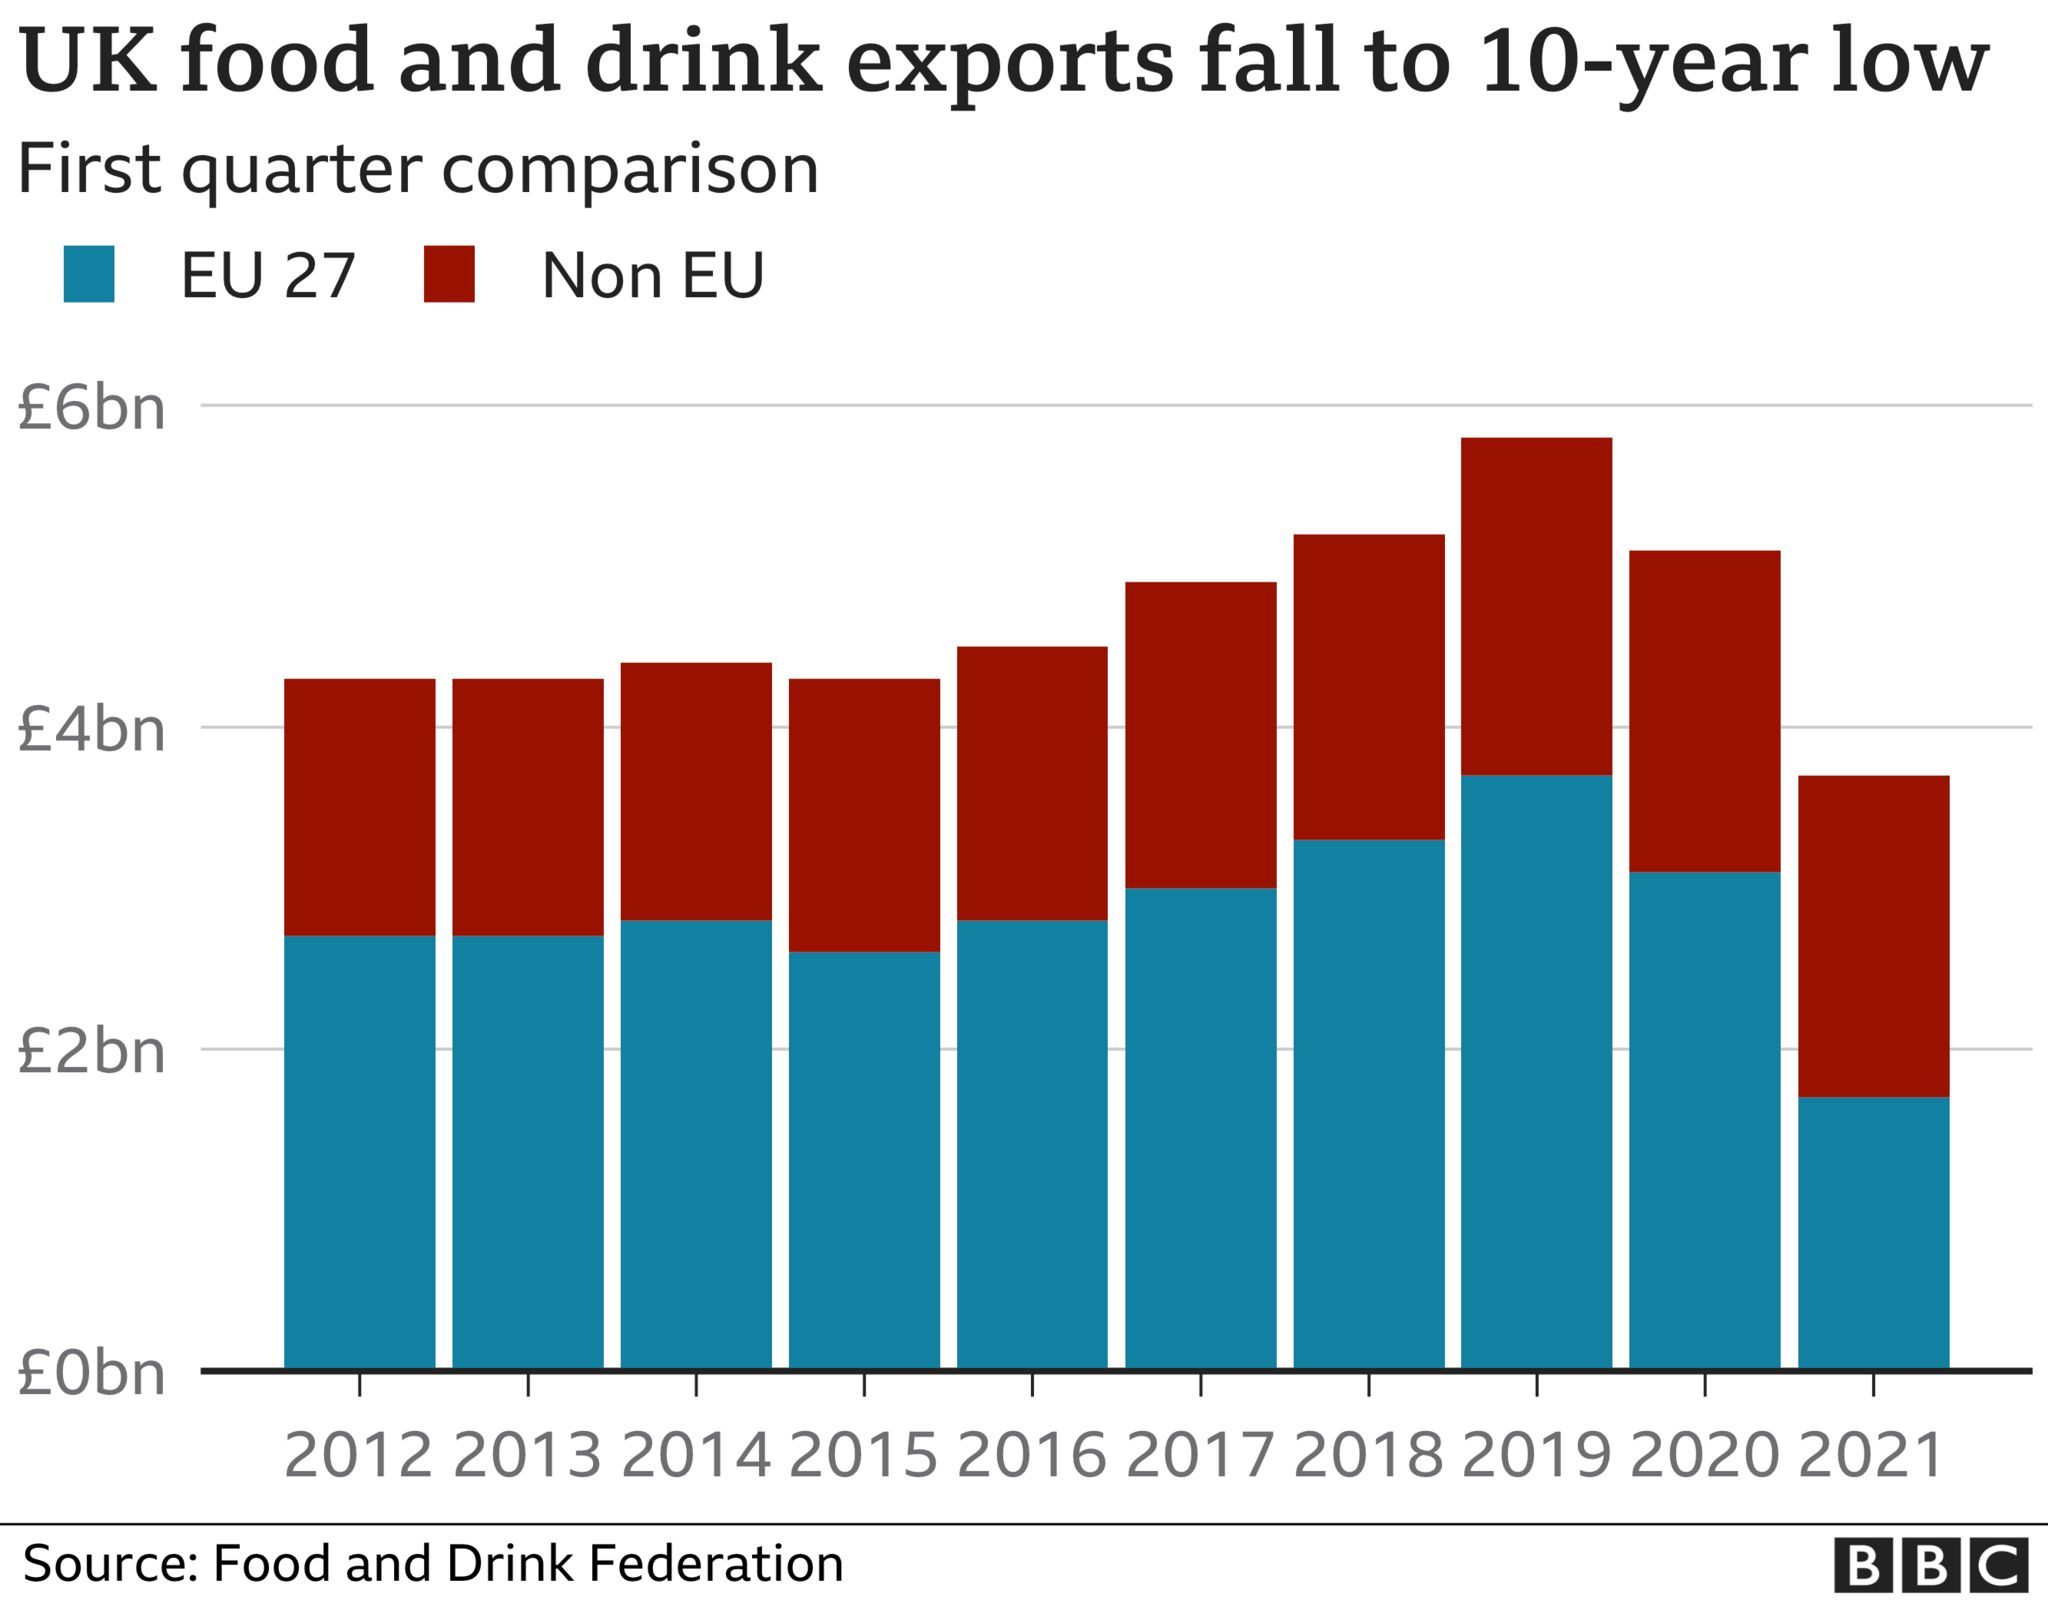 Chart showing food and drink exports at 10-year low uk food and drink exports to the eu almost halved in first quarter UK food and drink exports to the EU almost halved in first quarter  118976680 optimised fdf ukexports whole nc 3